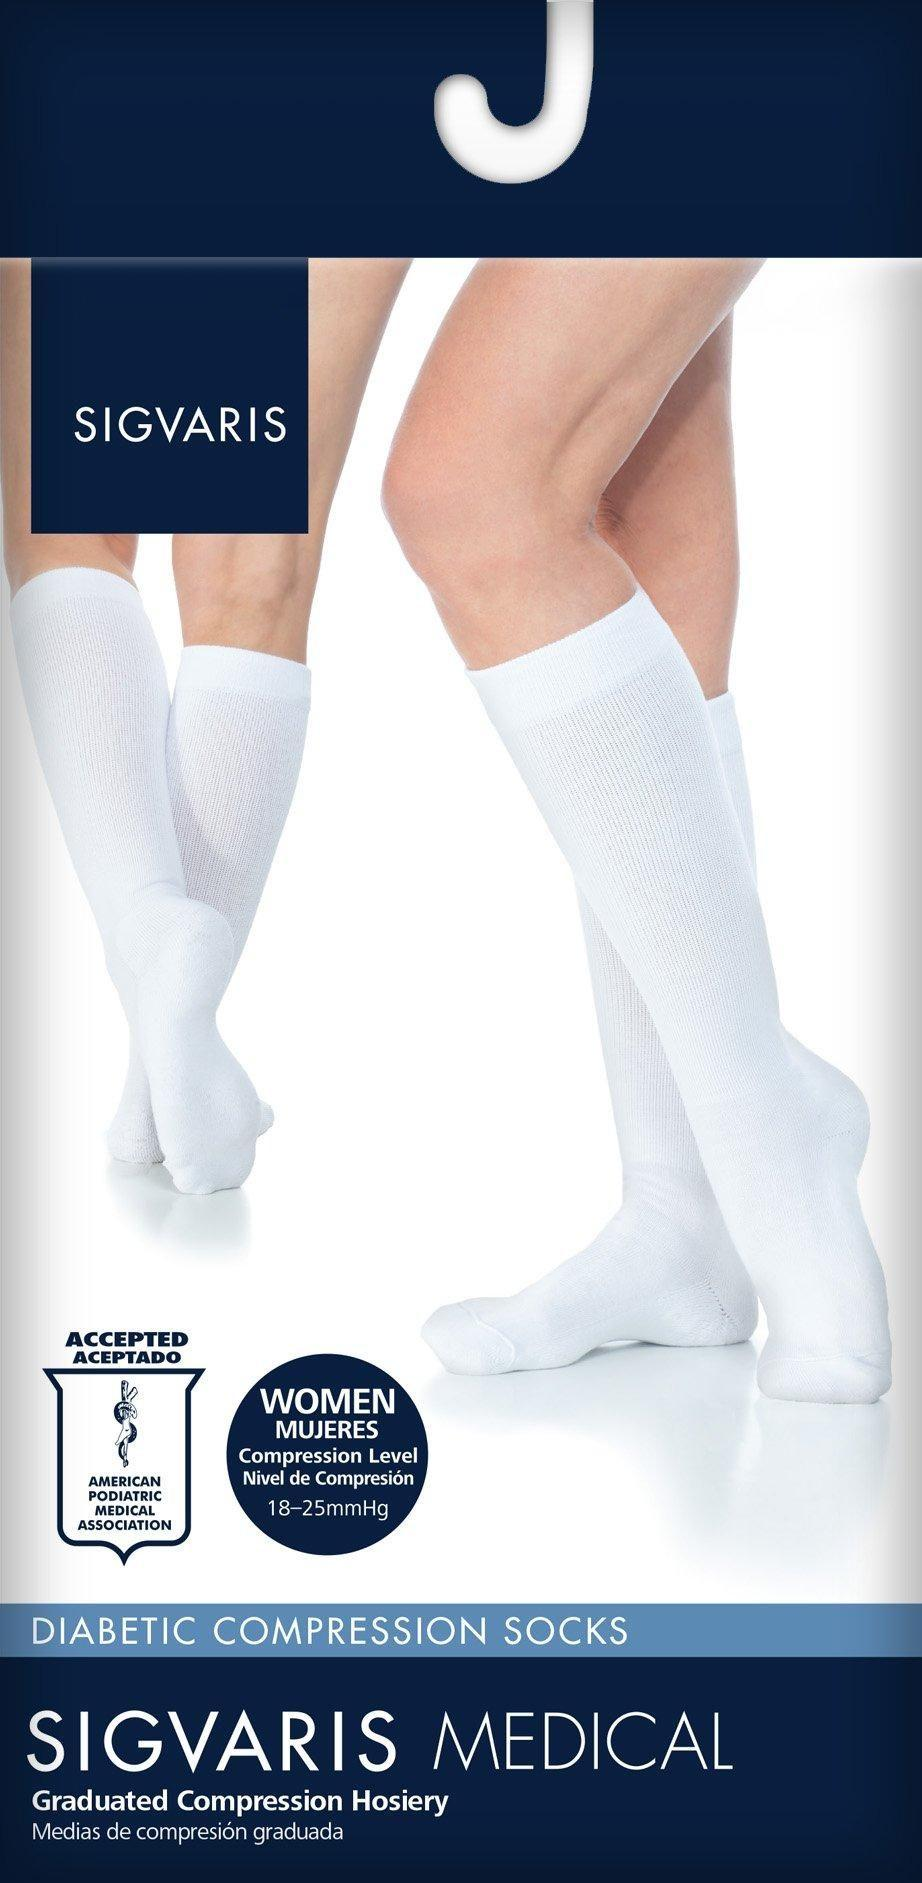 Diabetic Compression Socks For Women By Sigvaris